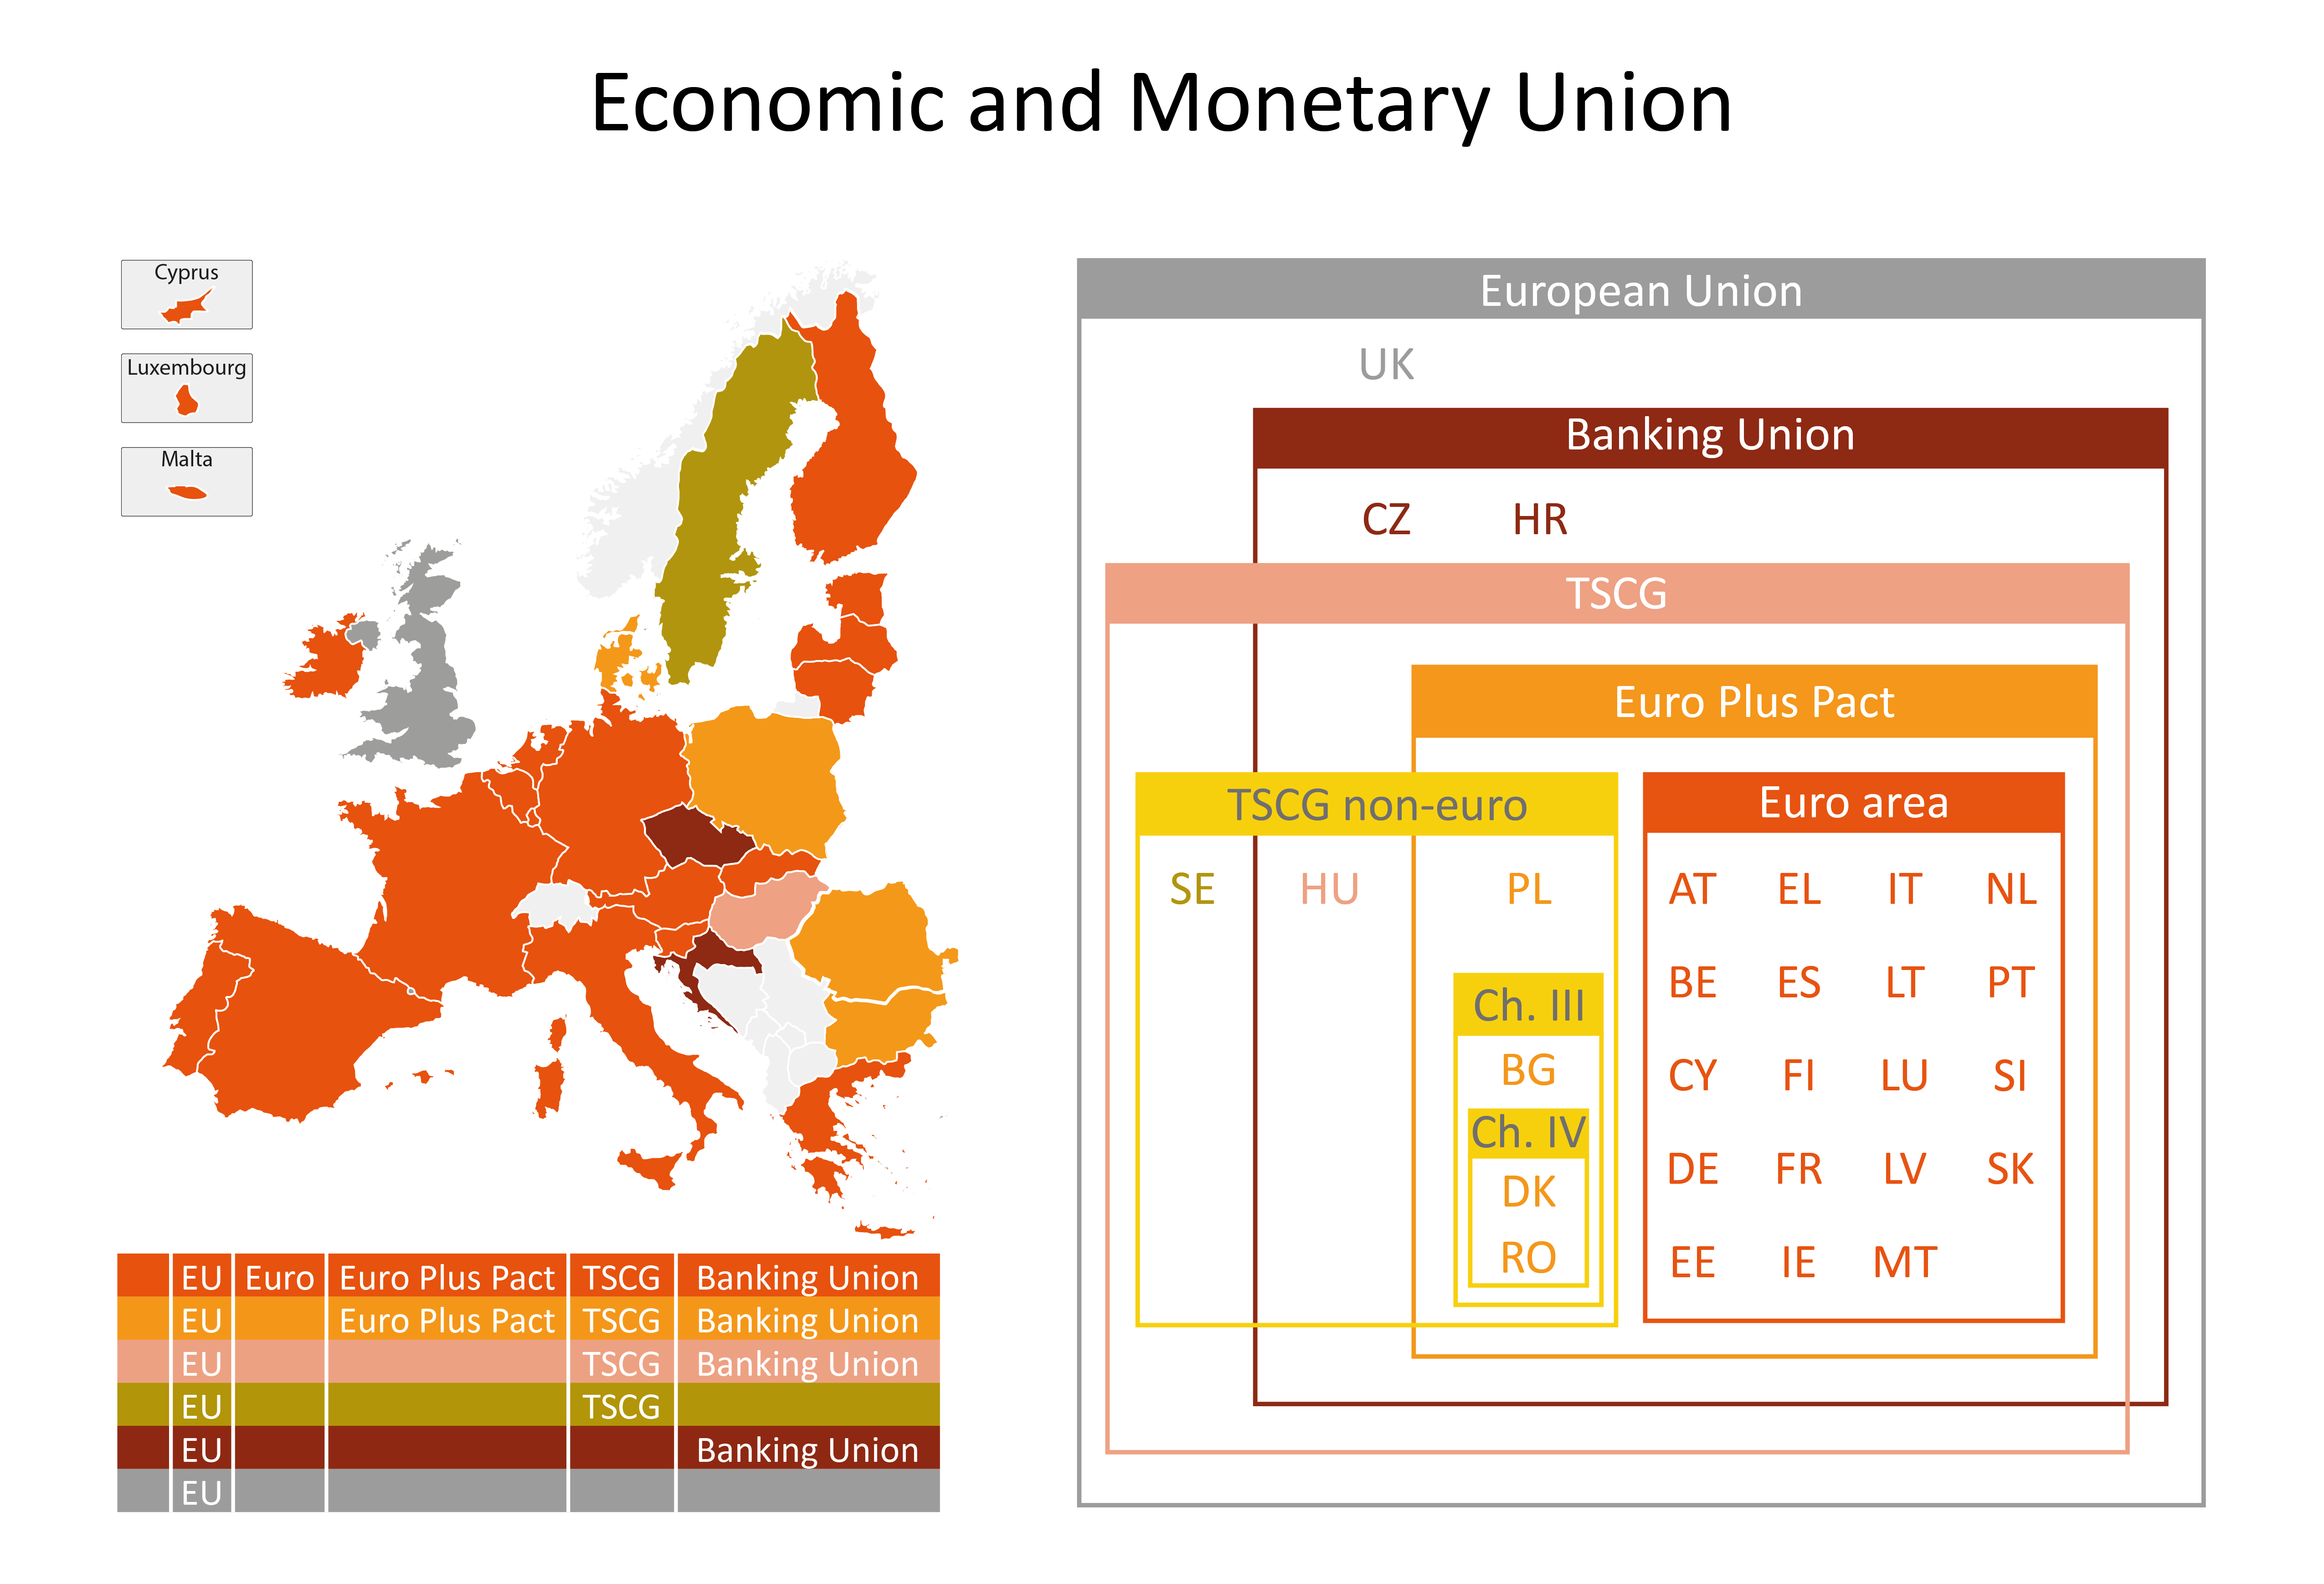 european economic and monetary union essay It will discuss how the greek government tried to challenge basic elements of the new european economic economic and monetary union essay on the world.